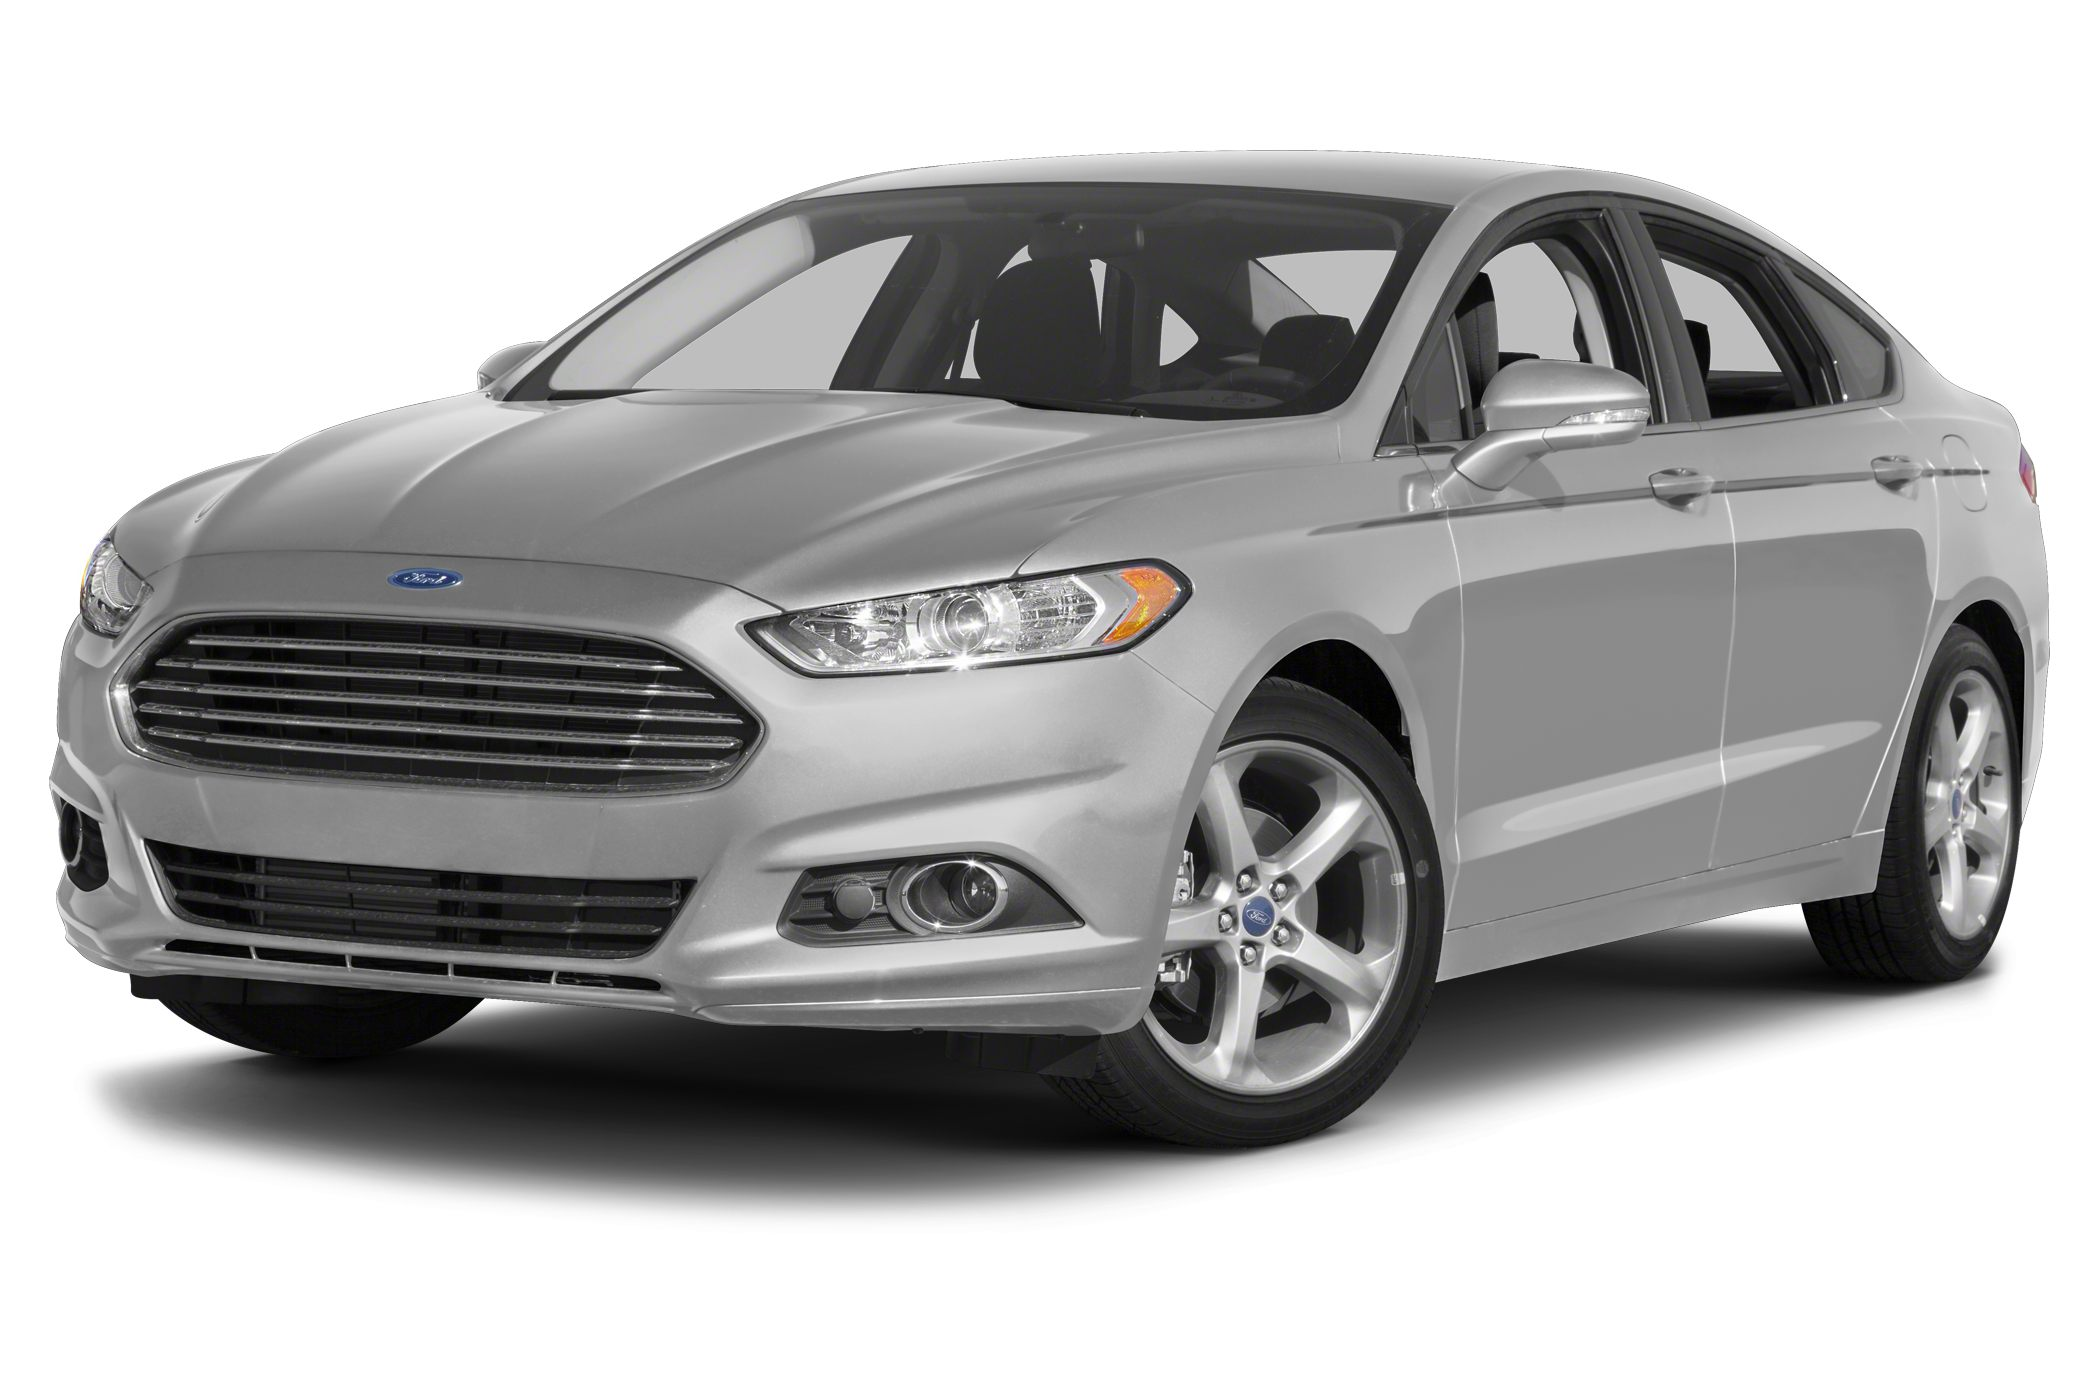 2013 Ford Fusion SE Sedan for sale in Mattoon for $18,989 with 40,232 miles